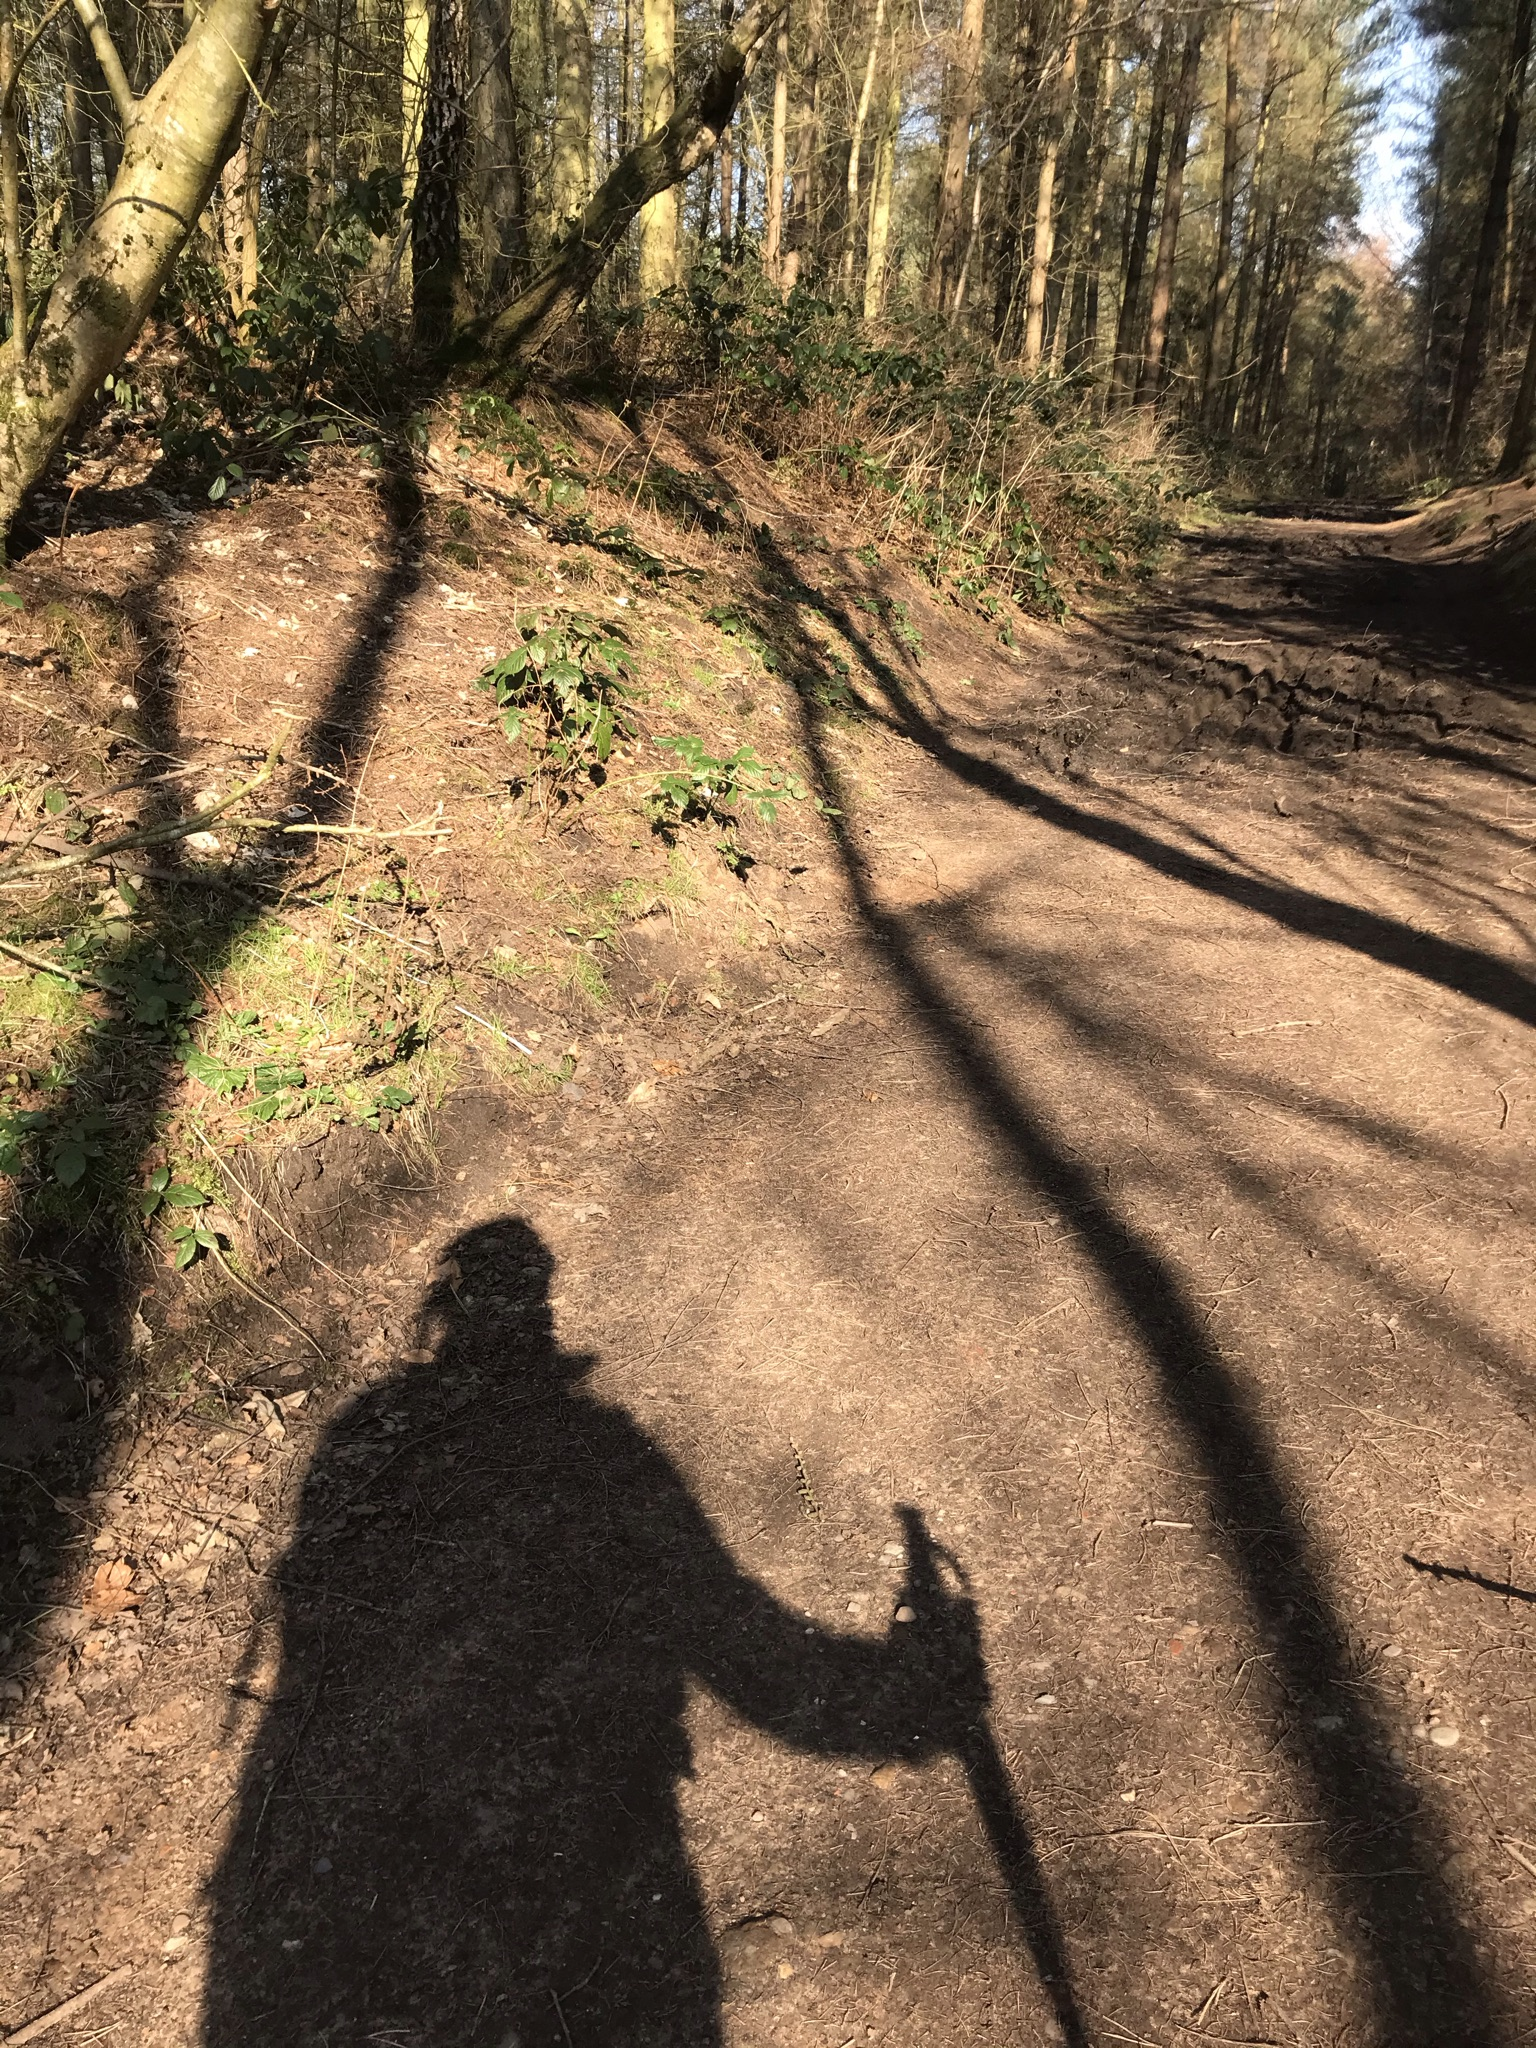 The shadow of a person with a walking pole against a dirt track between tall straight trees